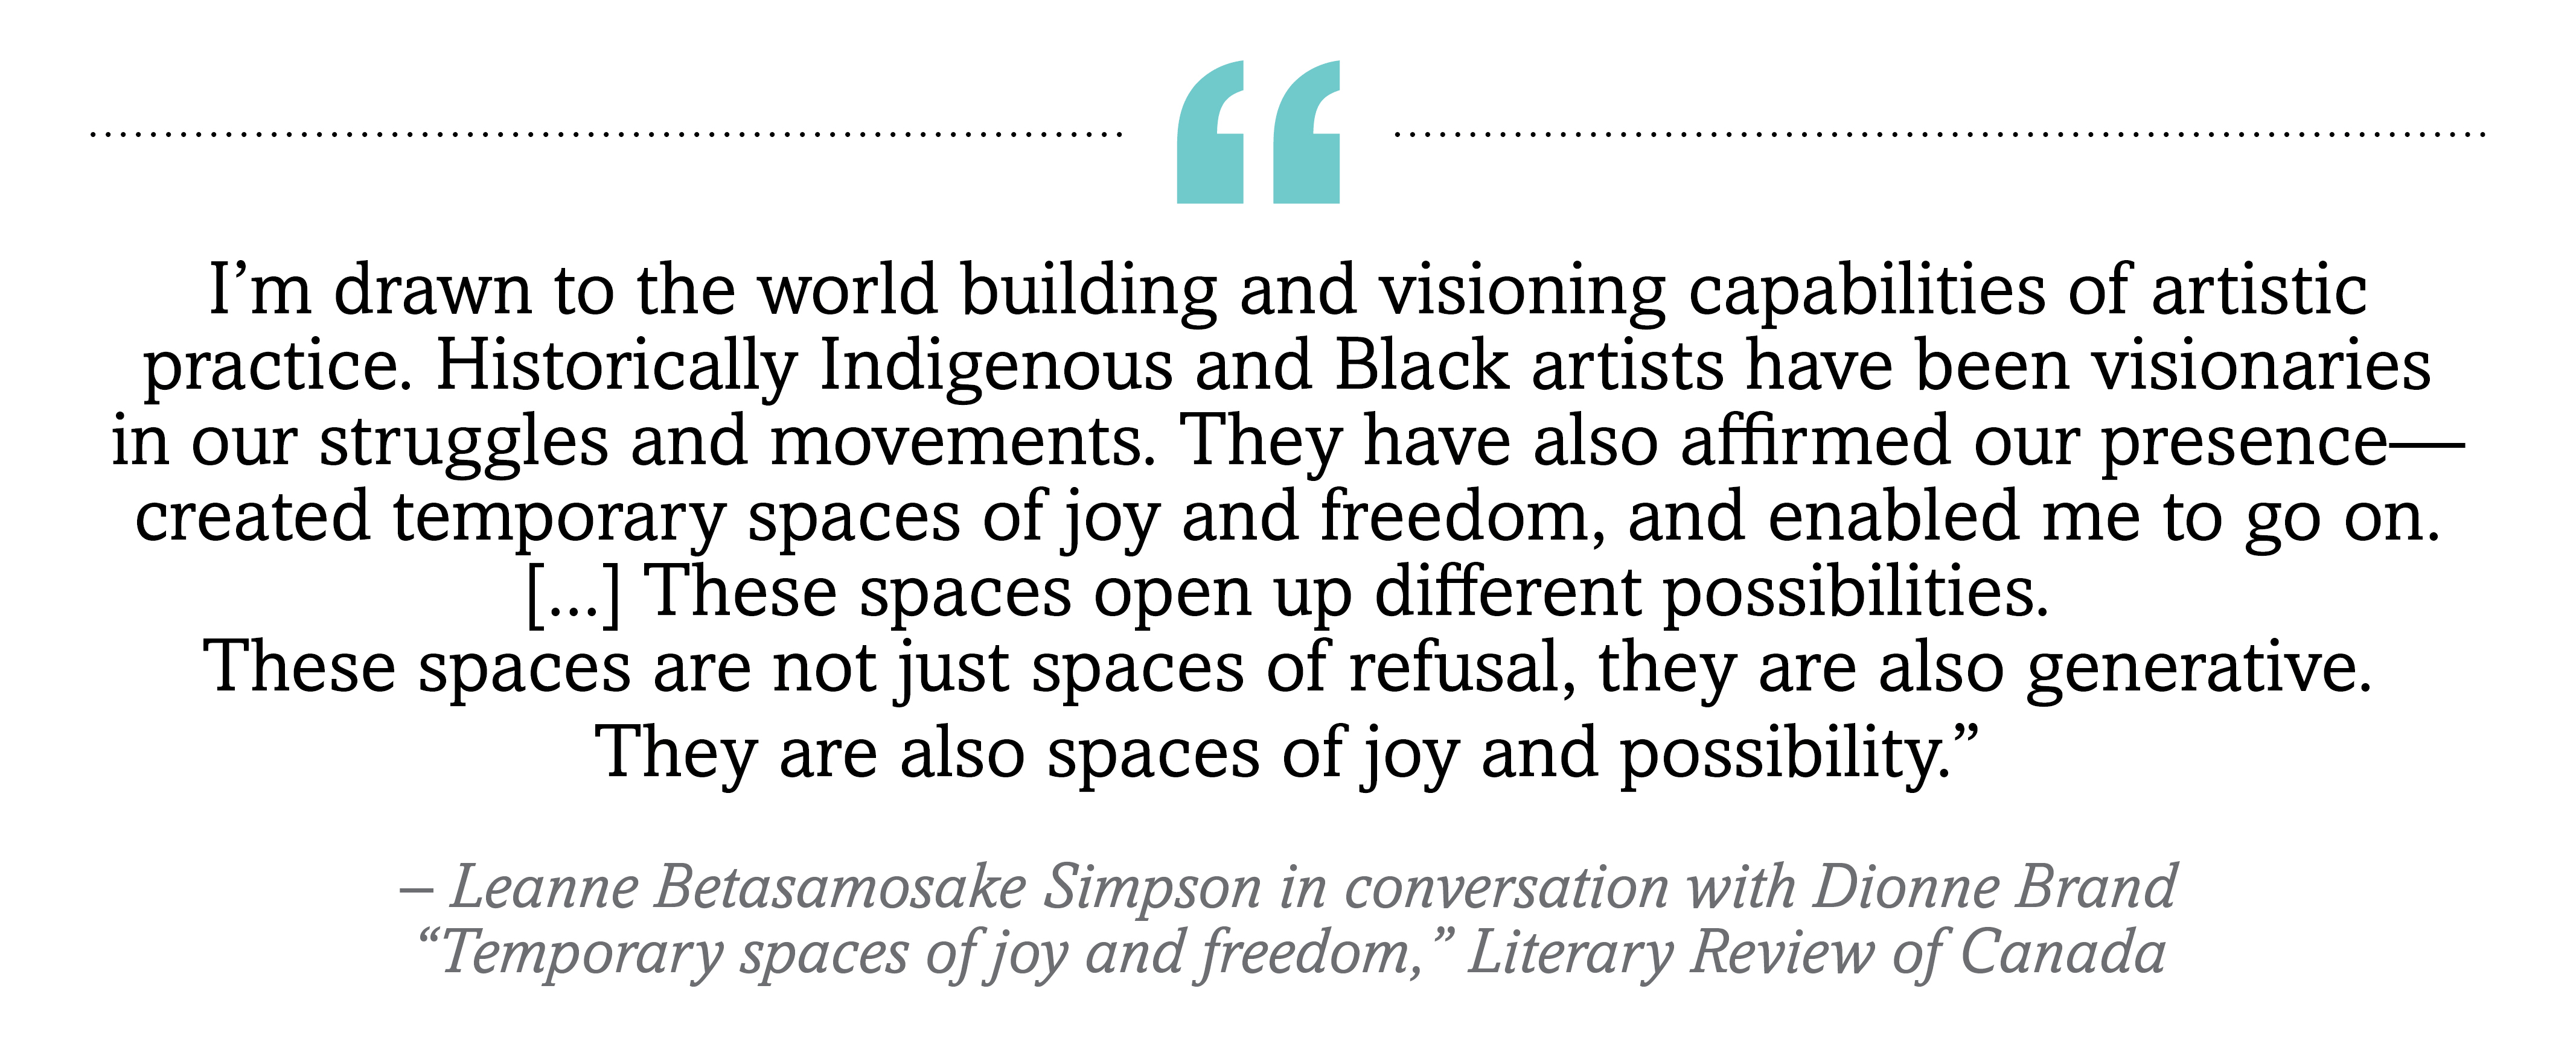 """I'm drawn to the world building and visioning capabilities of artistic practice. Historically Indigenous and Black artists have been visionaries in our struggles and movements. They have also affirmed our presence—­created temporary spaces of joy and freedom, and enabled me to go on. [...] I really liked creating these islands of freedom, little glimpses of freedom where we stand together and we get to feel, just for a second maybe, what freedom might be like, and to get that feeling into our bones. These spaces open up different possibilities. These spaces are not just spaces of refusal, they are also generative. They are also spaces of joy and possibility."""